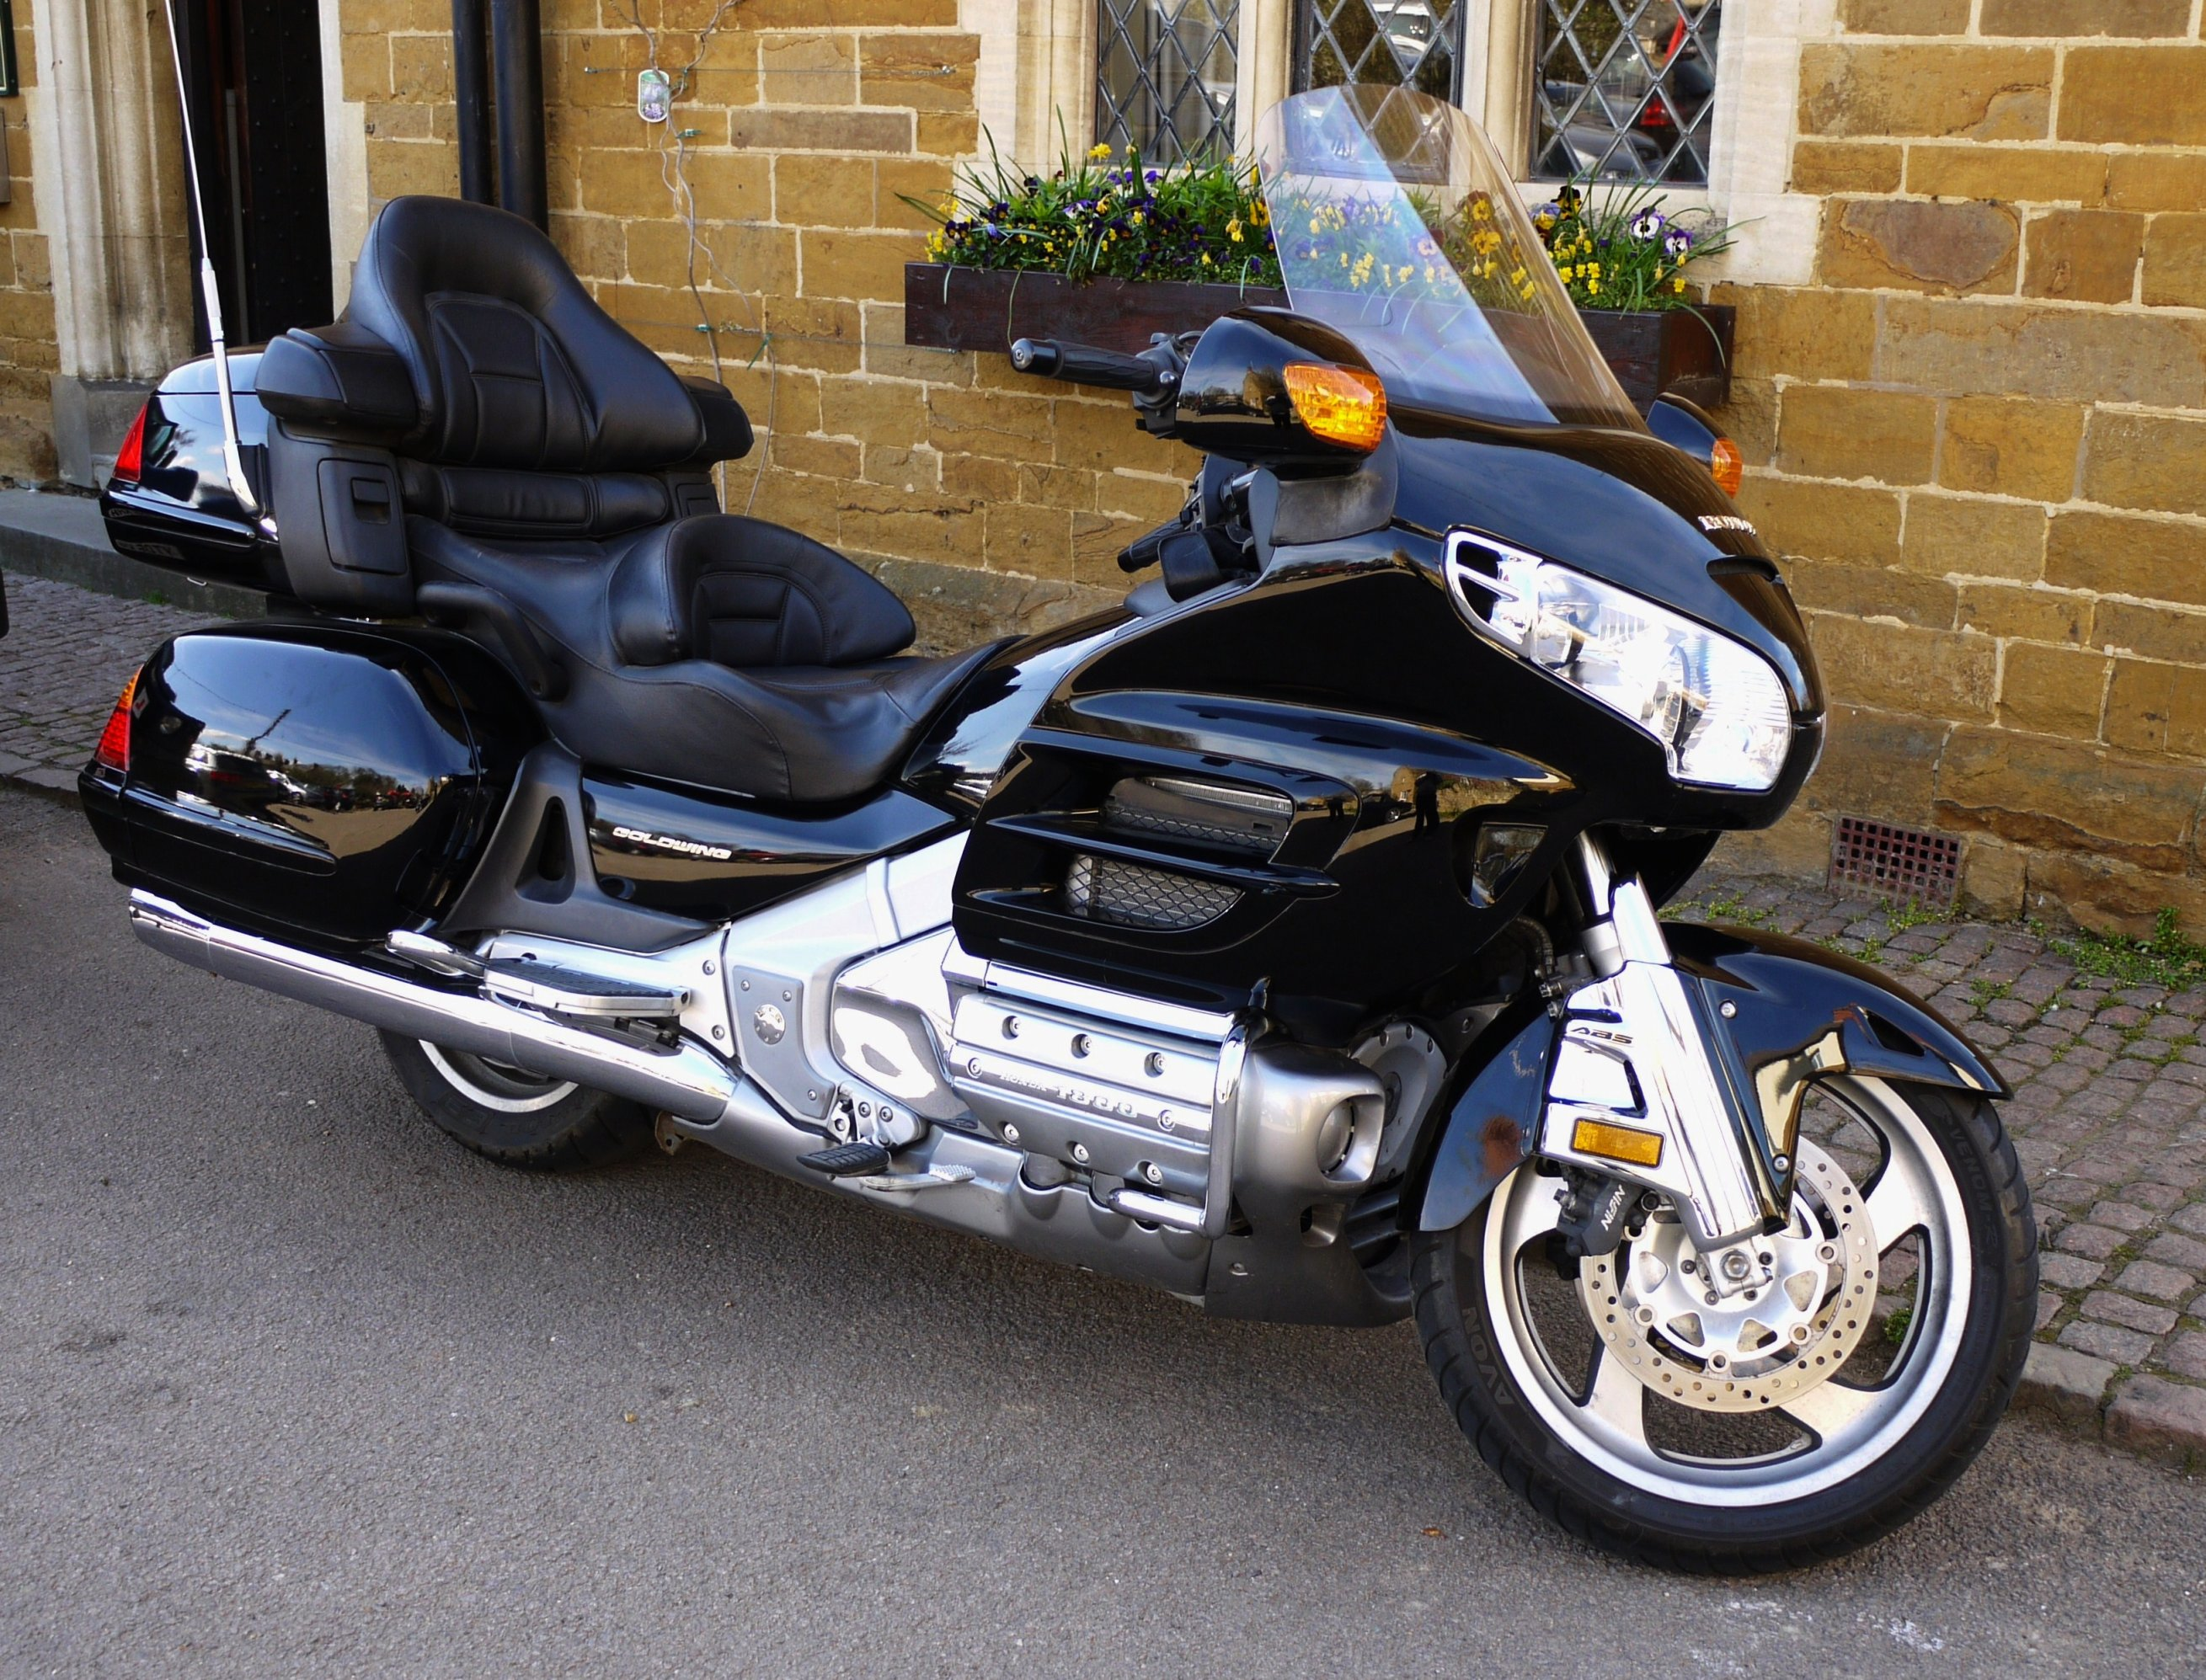 File:Honda Gold Wing (gold even when black) - Flickr ...